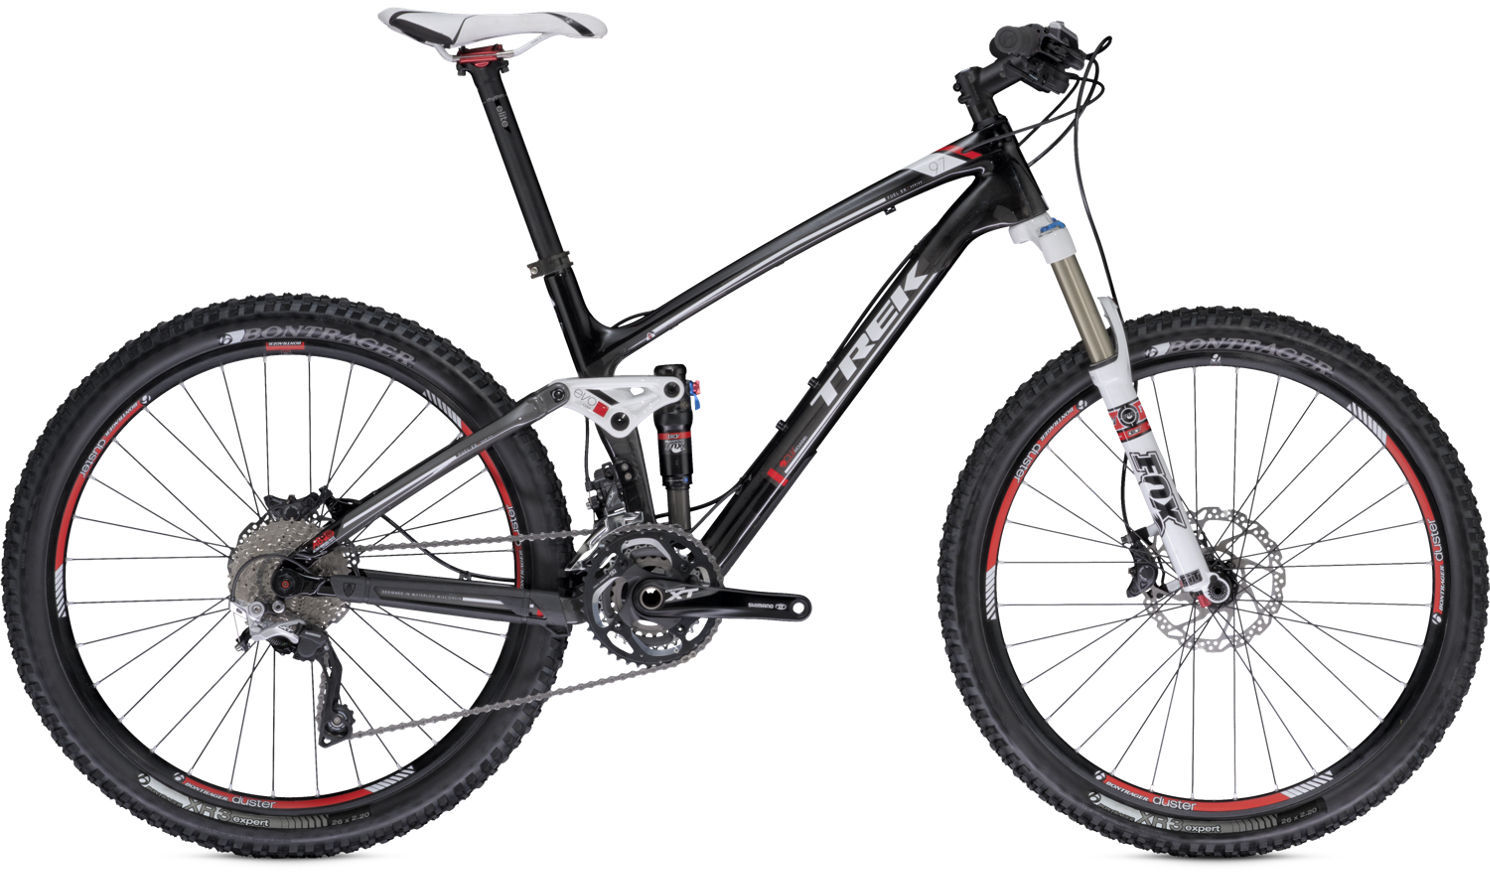 Trek Fuel Ex 9 7 2013 Review The Bike List